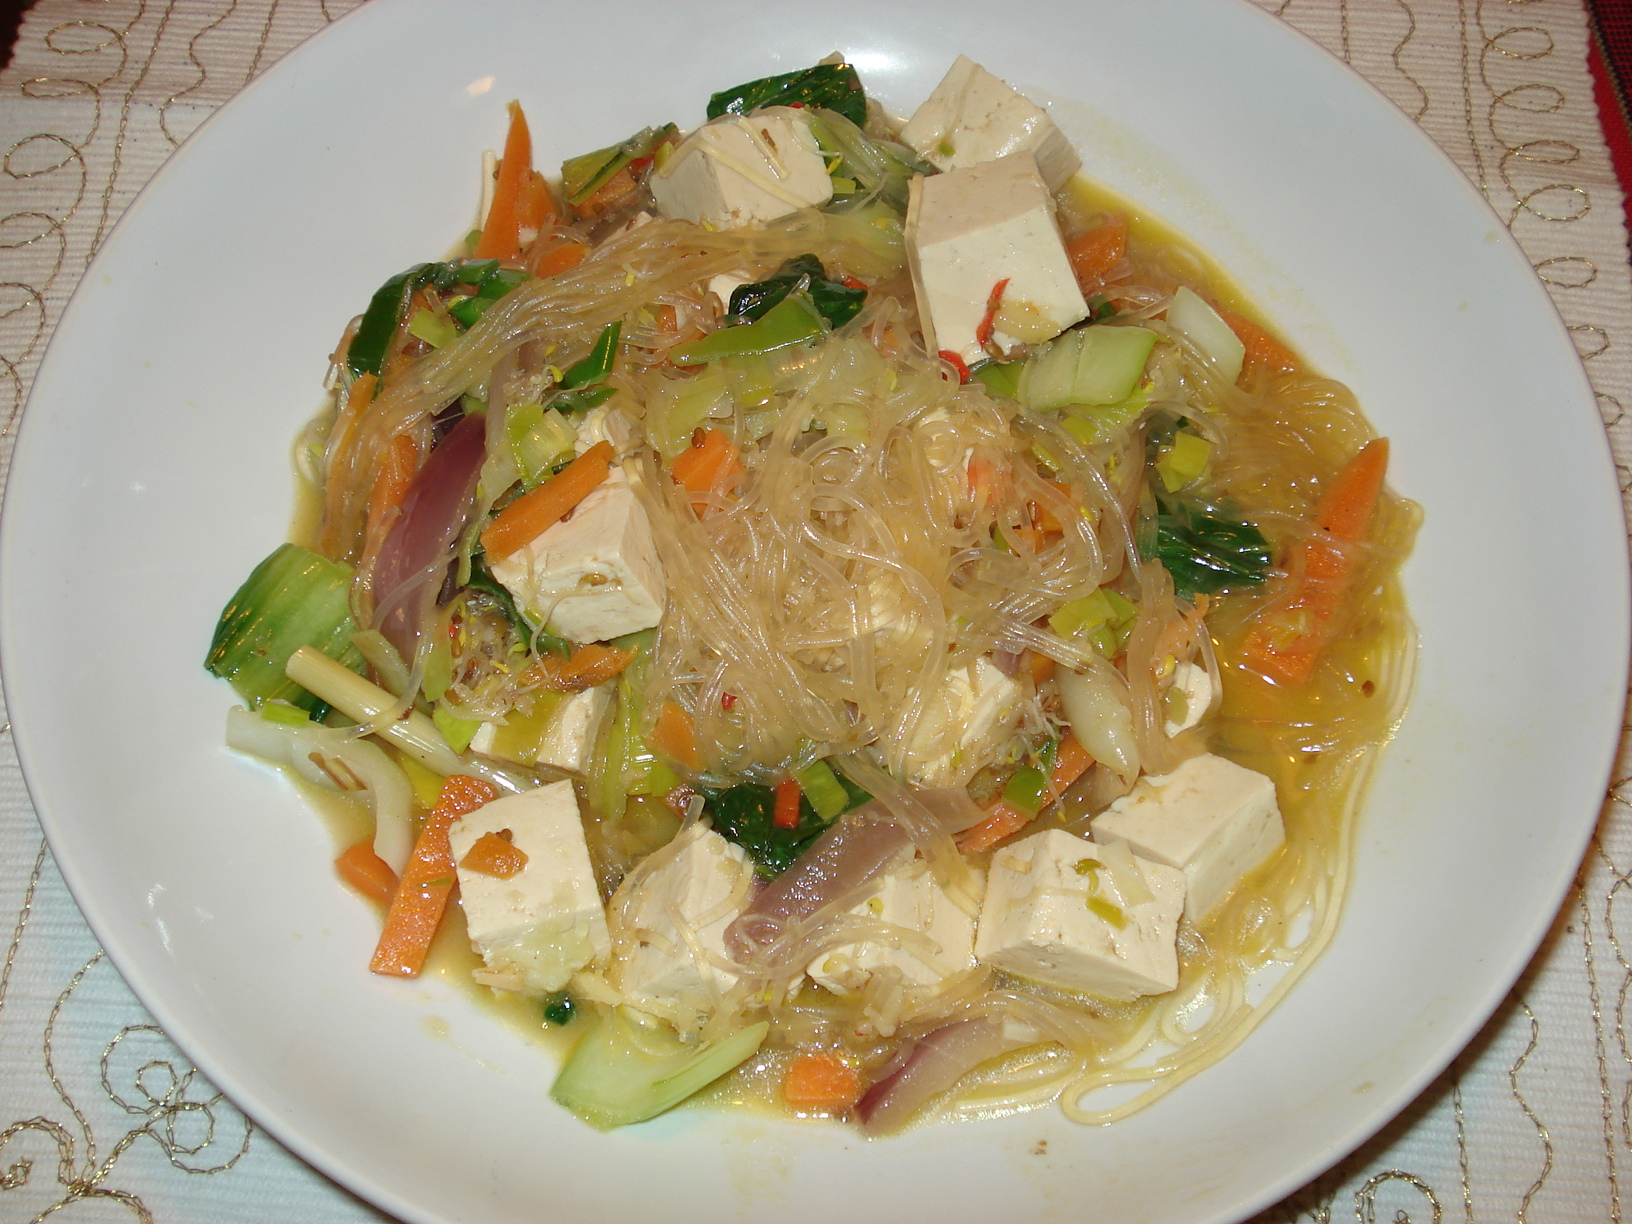 Wok with tofu, noodles and vegetables in a ginger and coconut sauce